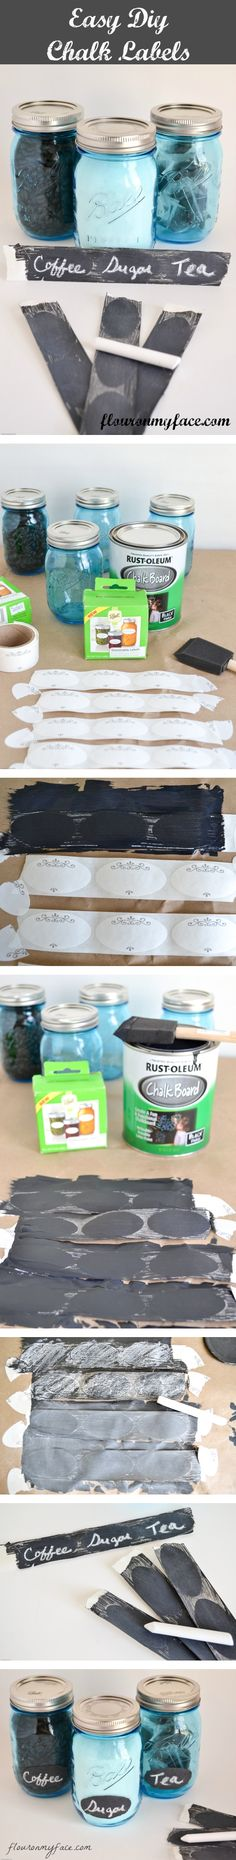 Easy DIY Chalkboard labels